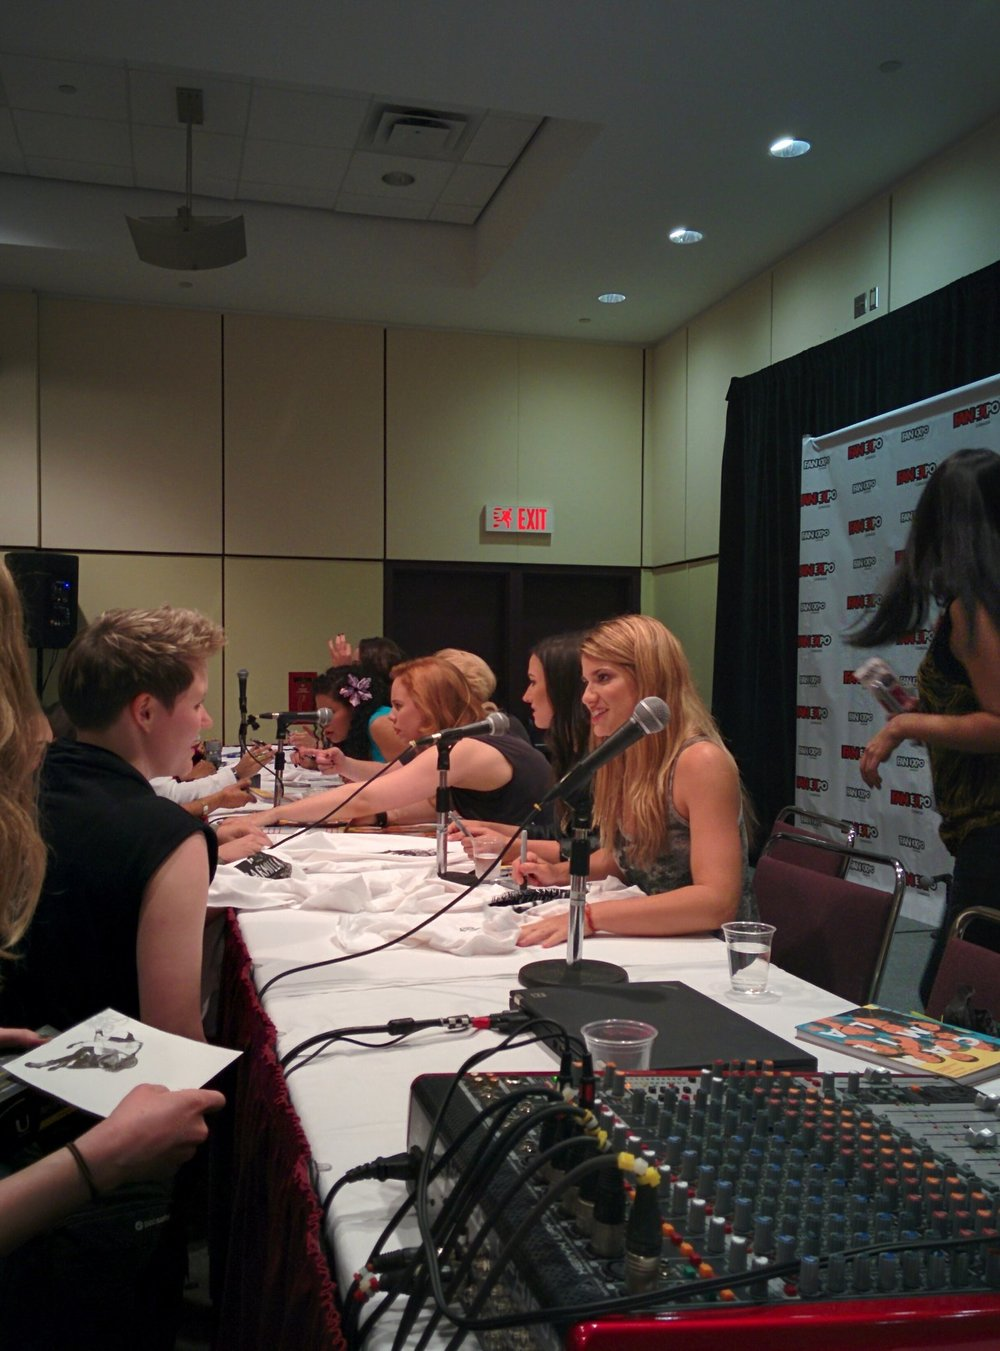 The cast of Carmilla interacting with fans during the signing portion of the panel. Credit: Aria Bauer